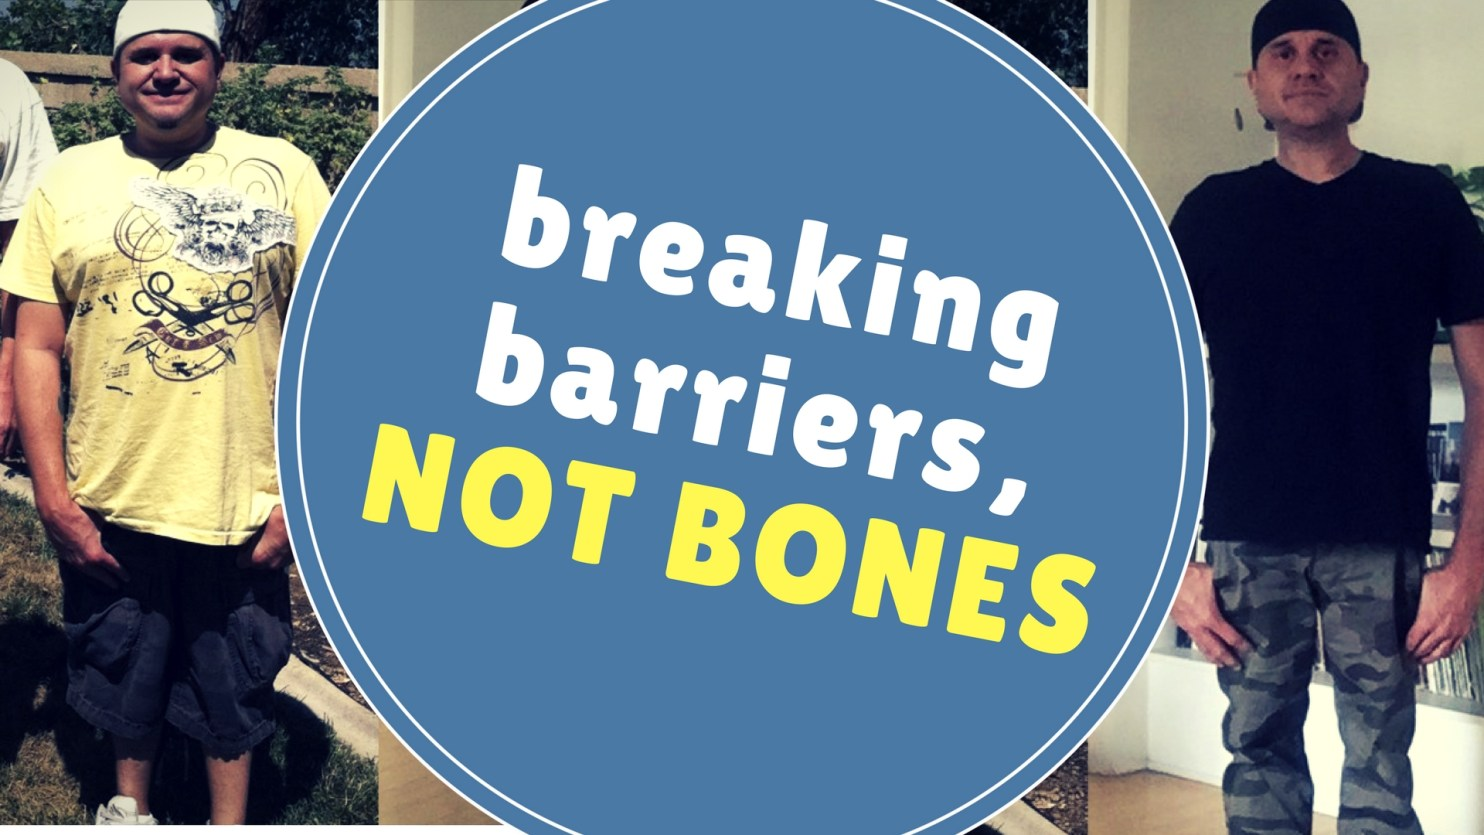 Breaking Barriers, Not Bones